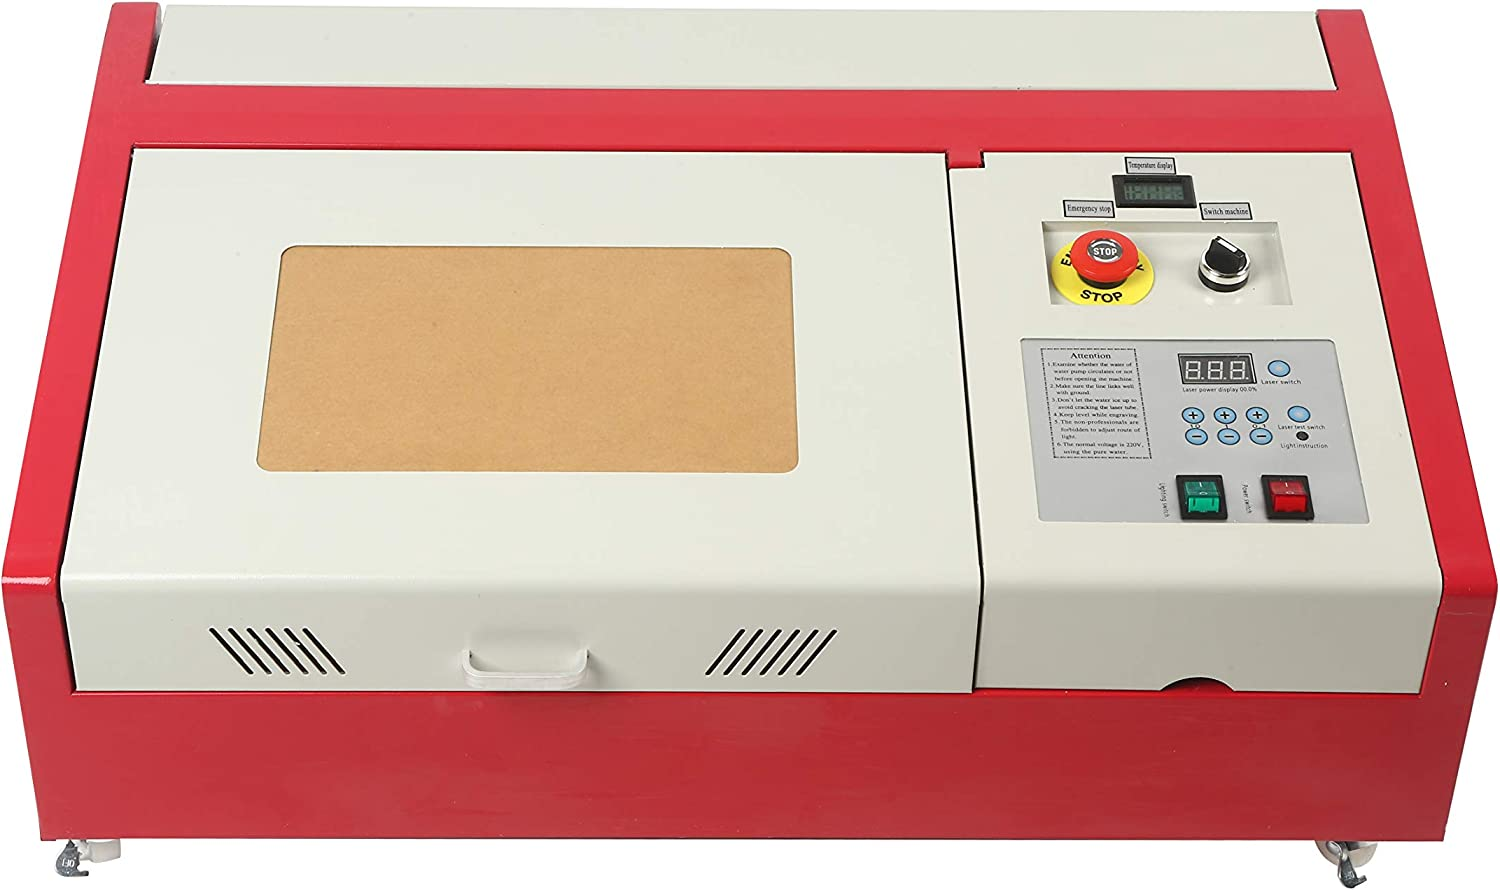 ZEYI 40W CO2 Laser Engraver Cutter, 12x8 Inches Laser Engraving Machine, DIY Desktop Wood Laser Engraver Cutter with Auxiliary Rotary Wheels & LCD Screen (New Version)